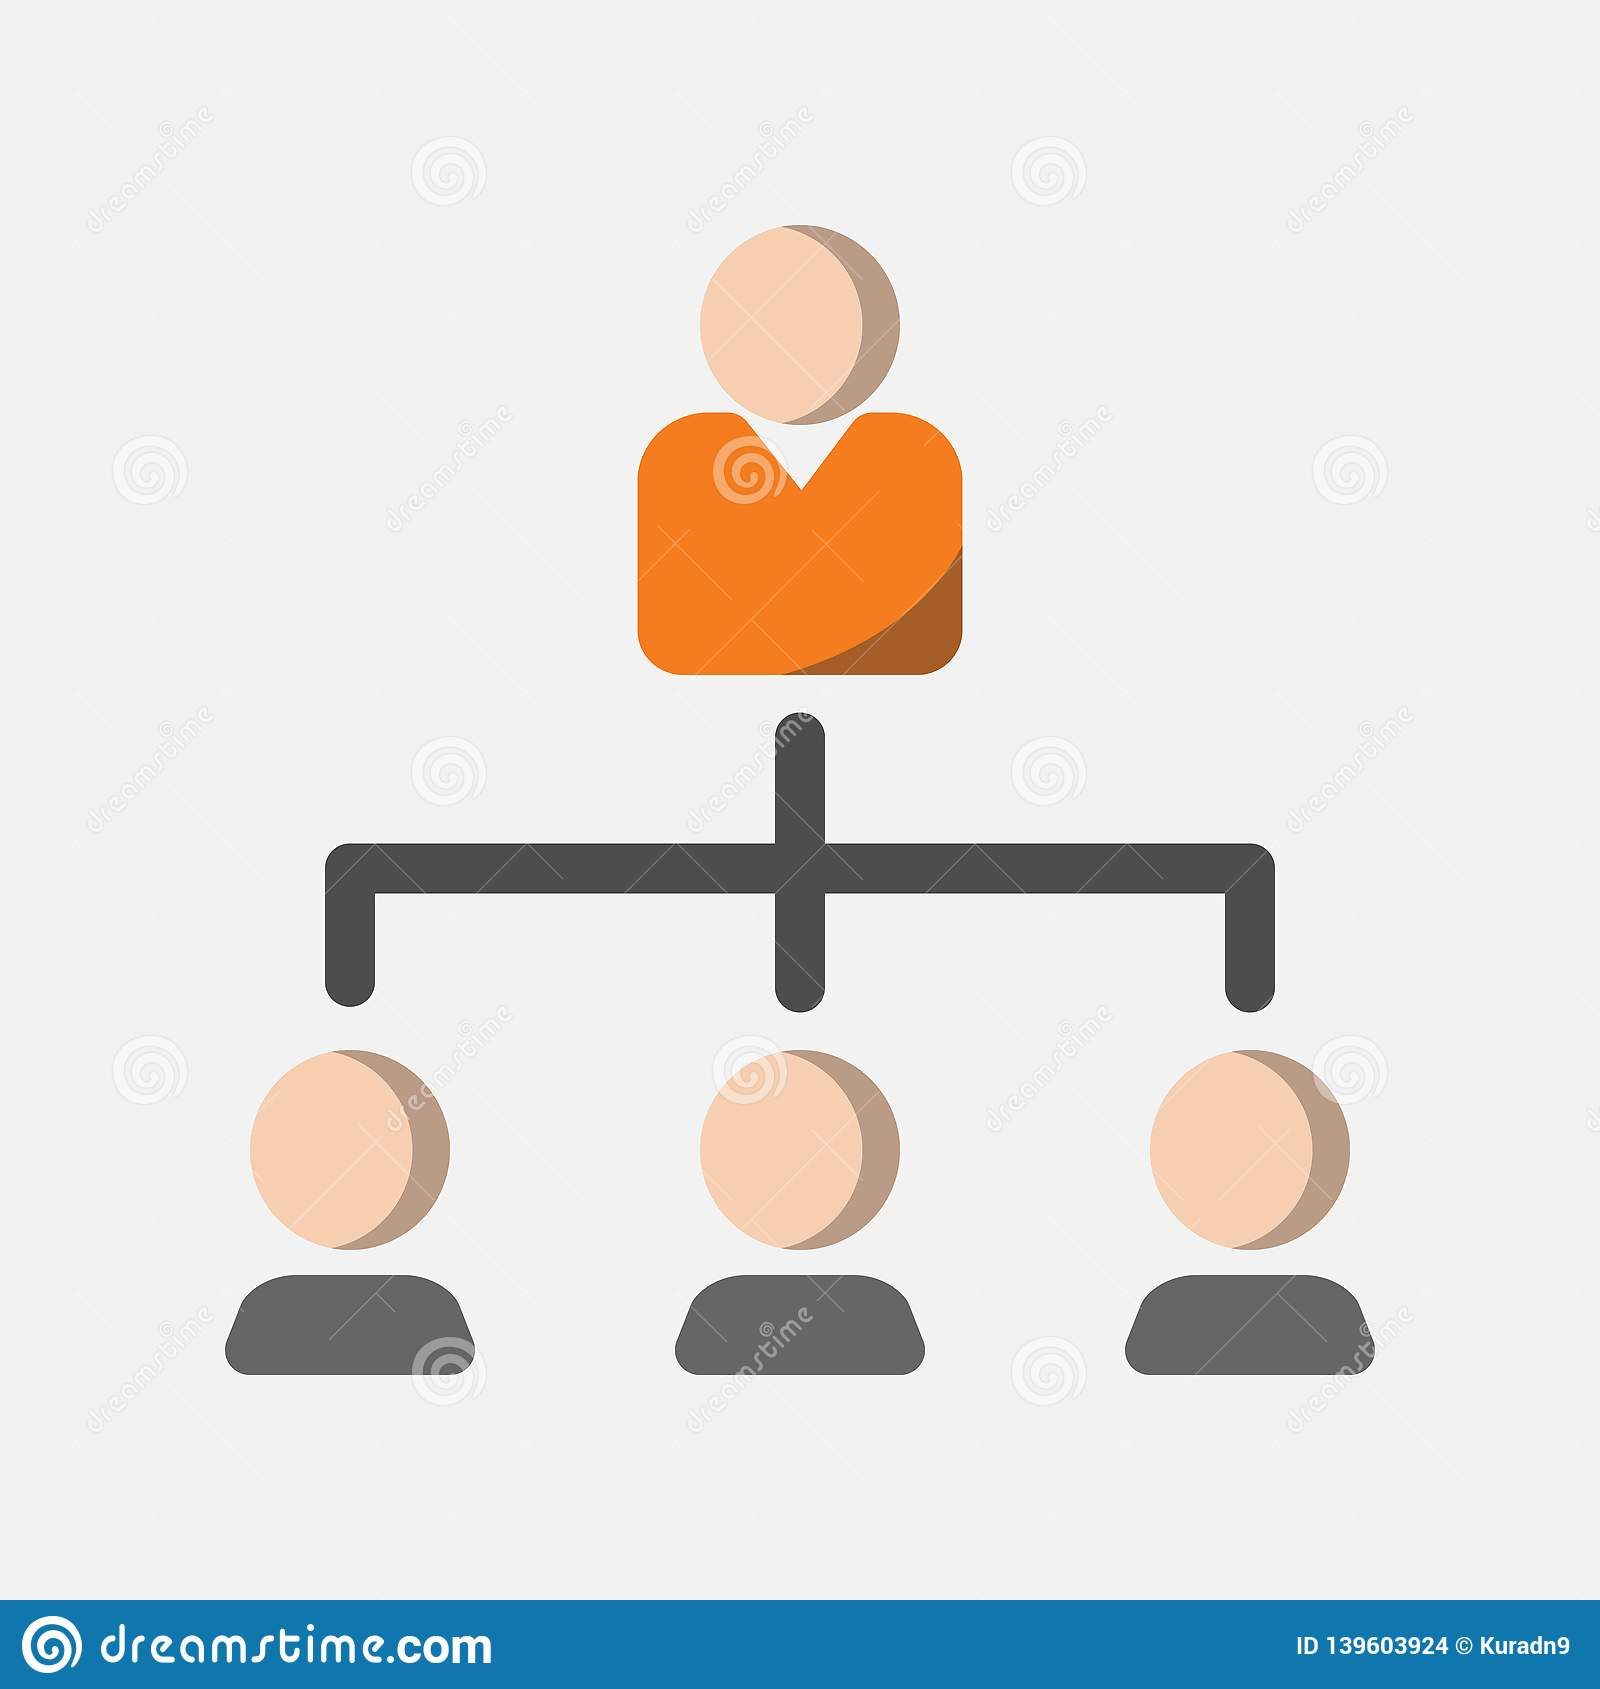 business icon organization structure and hierarchy icon in flat design stock vector illustration of flowchart corporate 139603924 https www dreamstime com business icon organization structure hierarchy icon flat design business icon organization structure hierarchy icon image139603924